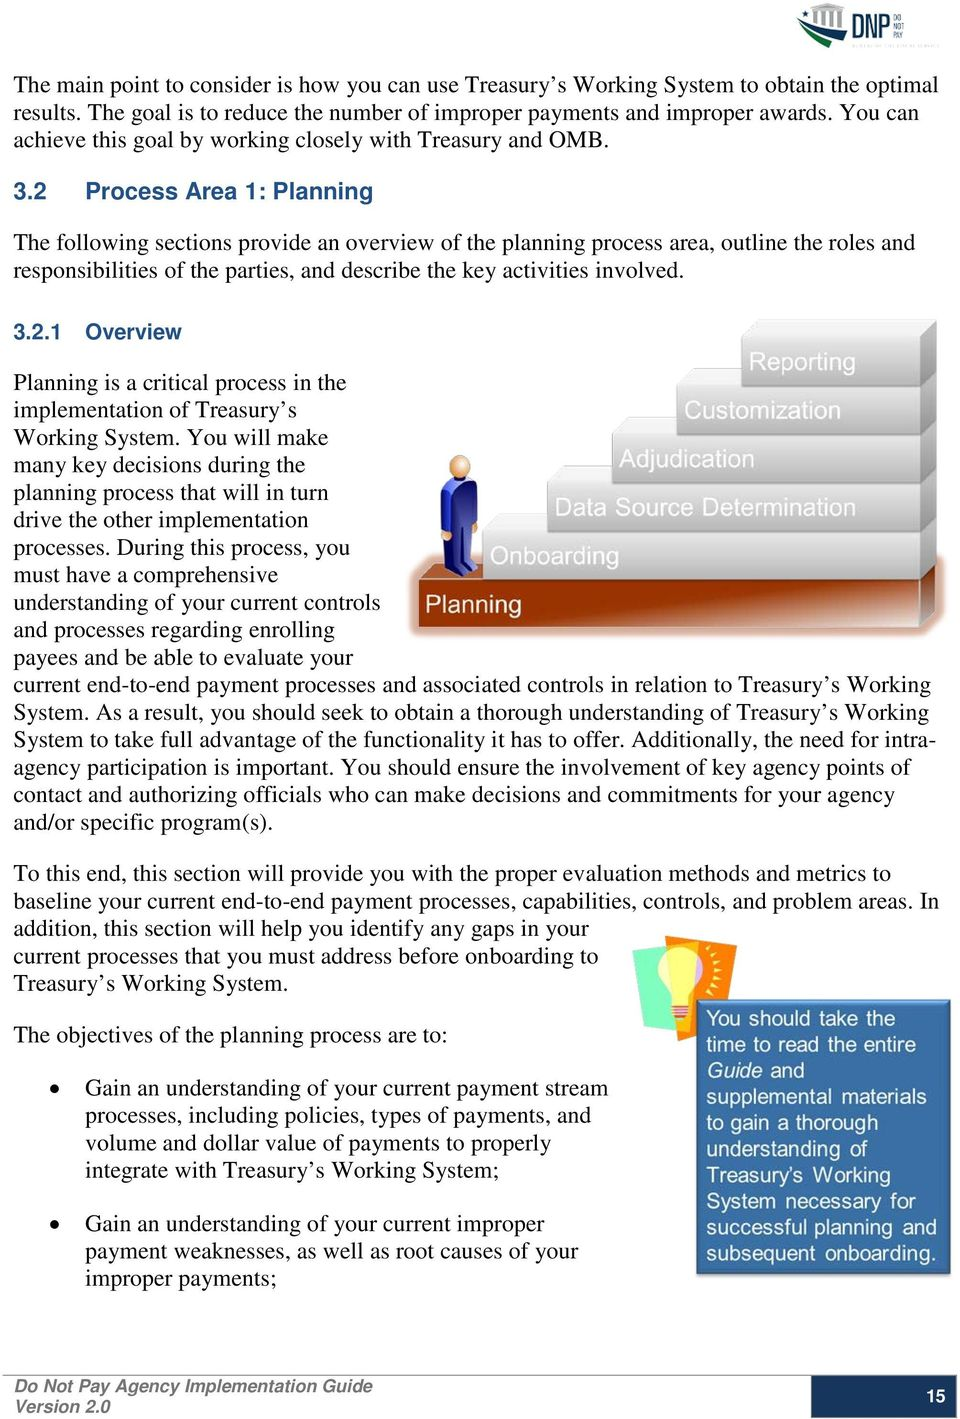 2 Process Area 1: Planning The following sections provide an overview of the planning process area, outline the roles and responsibilities of the parties, and describe the key activities involved. 3.